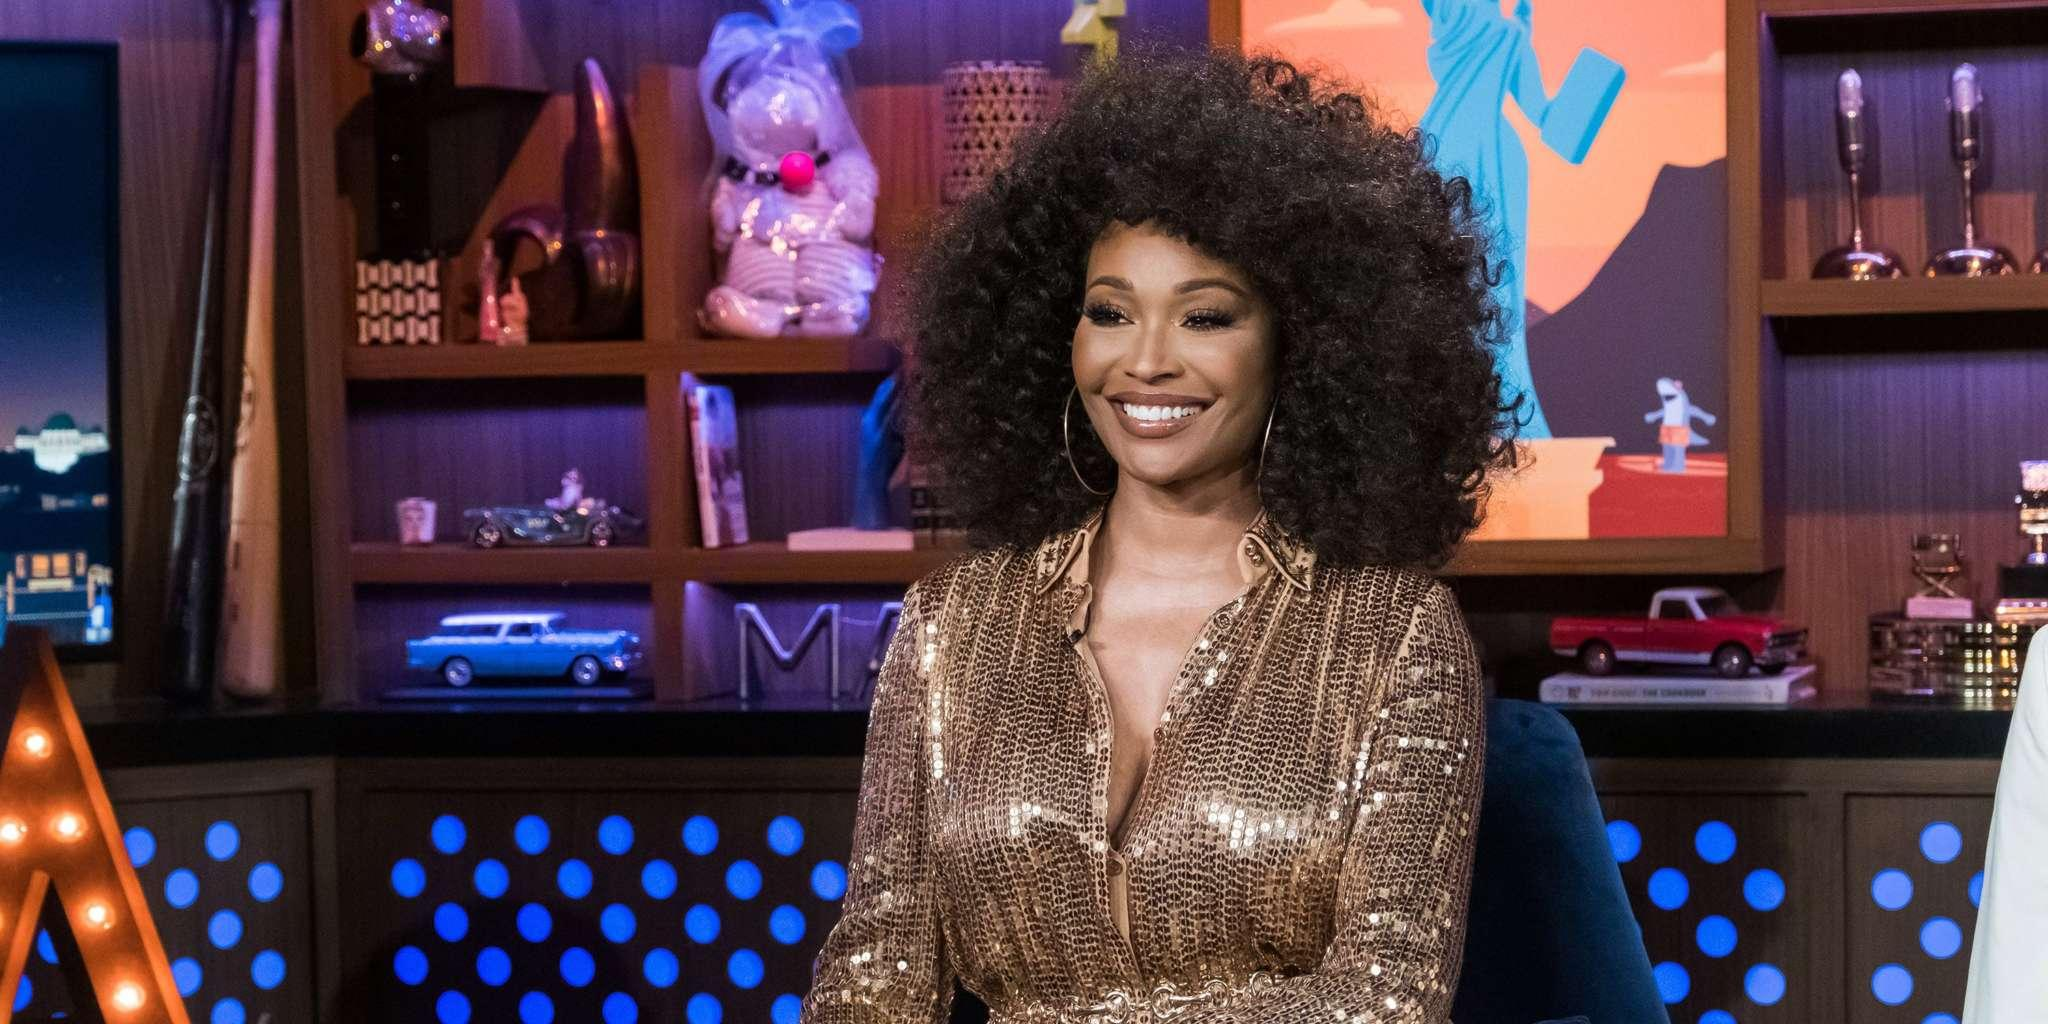 Cynthia Bailey Shares An Empowering Message For Her Fans